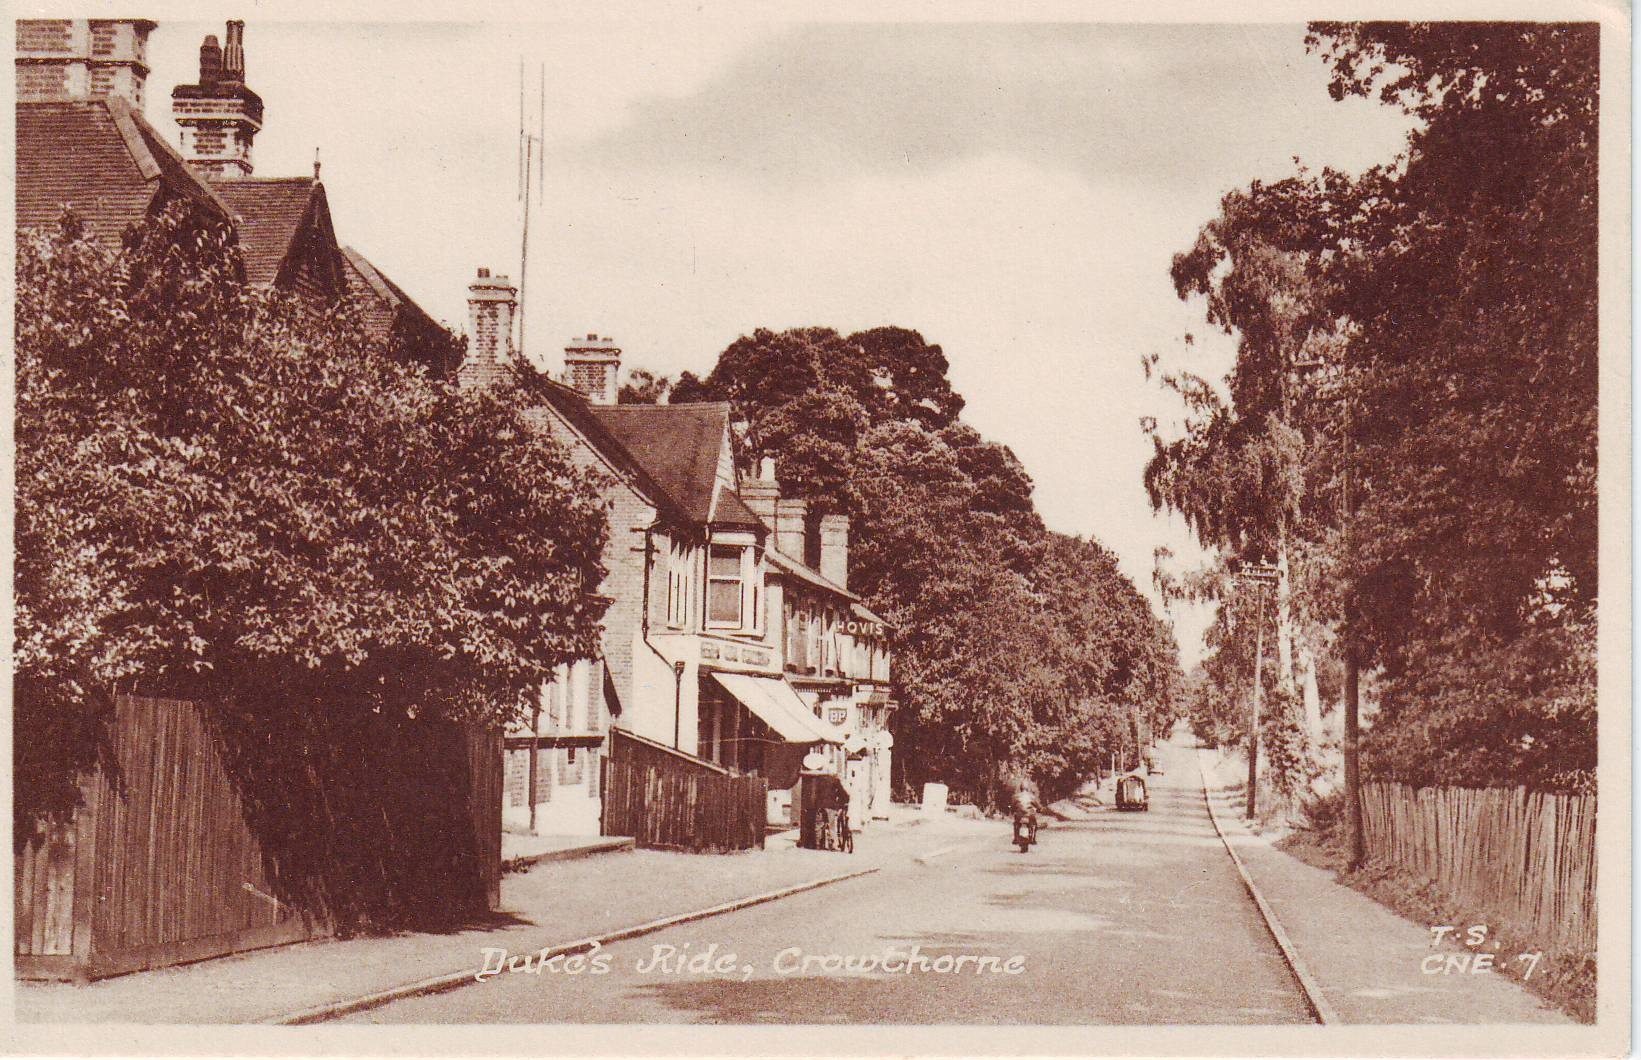 """Dukes Ride, Crowthorne"". Frith no. CNE7."